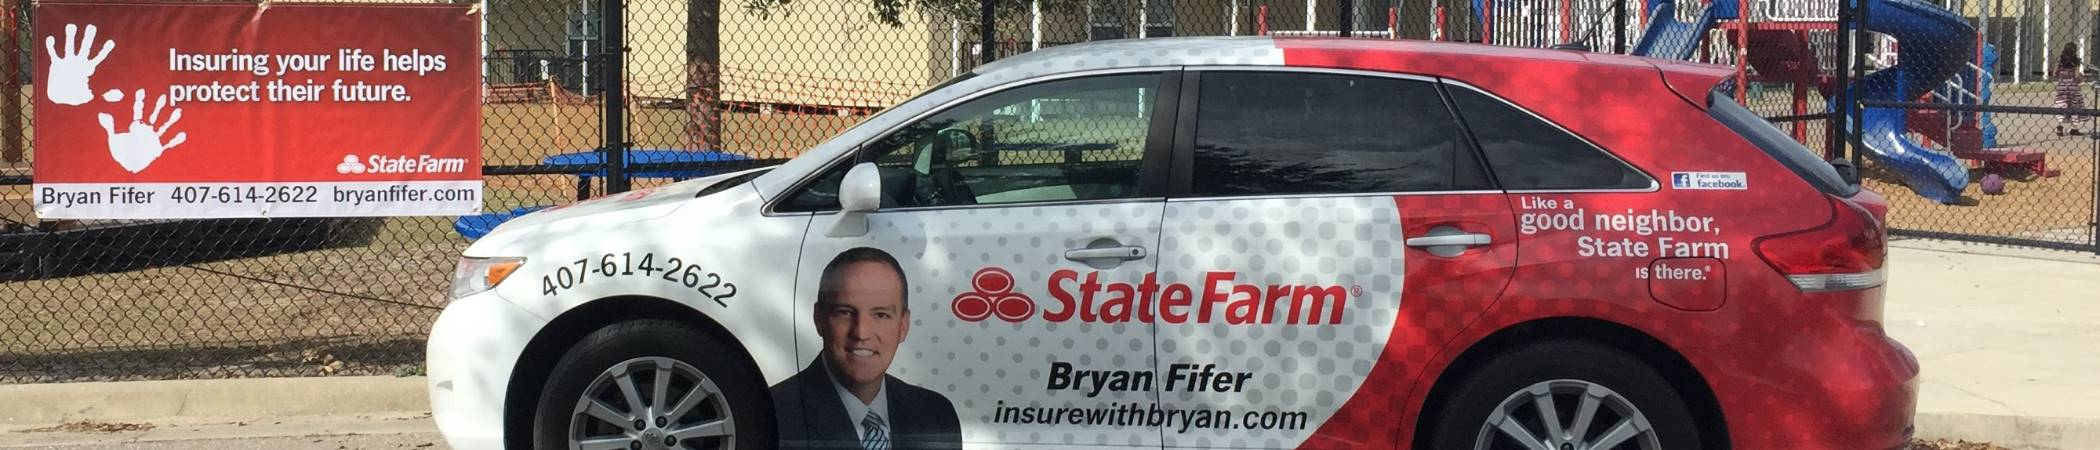 Bryan Fifer State Farm Insurance in Winter Garden, FL | Home, Auto Insurance & more